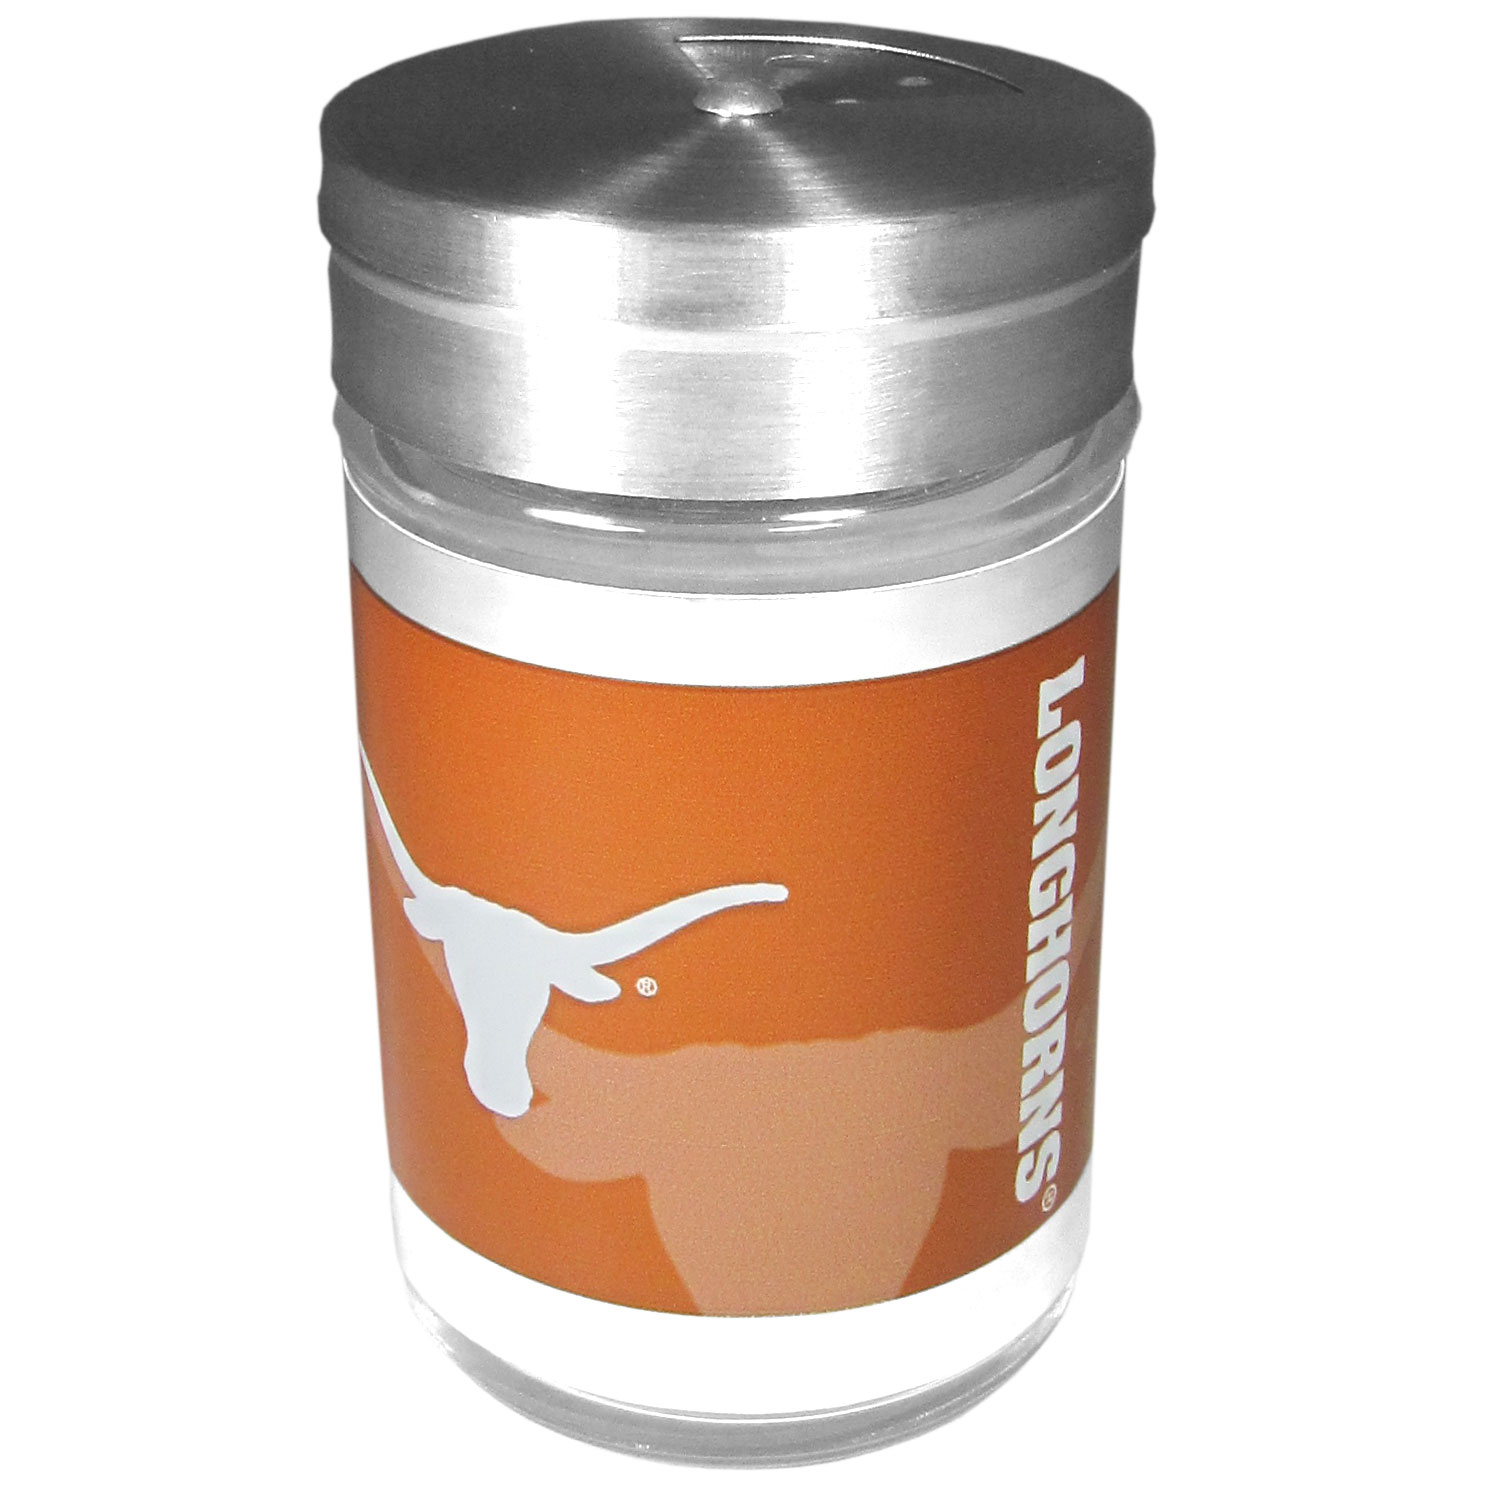 Texas Longhorns Tailgater Season Shakers - Spice it up with our Texas Longhorns tailgater season shakers! This compact shaker is 2 inch tall with a twist top that closes off the holes at the top making it perfect for travel preventing those messy spills. The shaker has wide holes perfect for keeping your pepper seeds or cheese toppings. The bright team graphics will make you the envy of the other fans while you are grilling up your tailgating goodies.